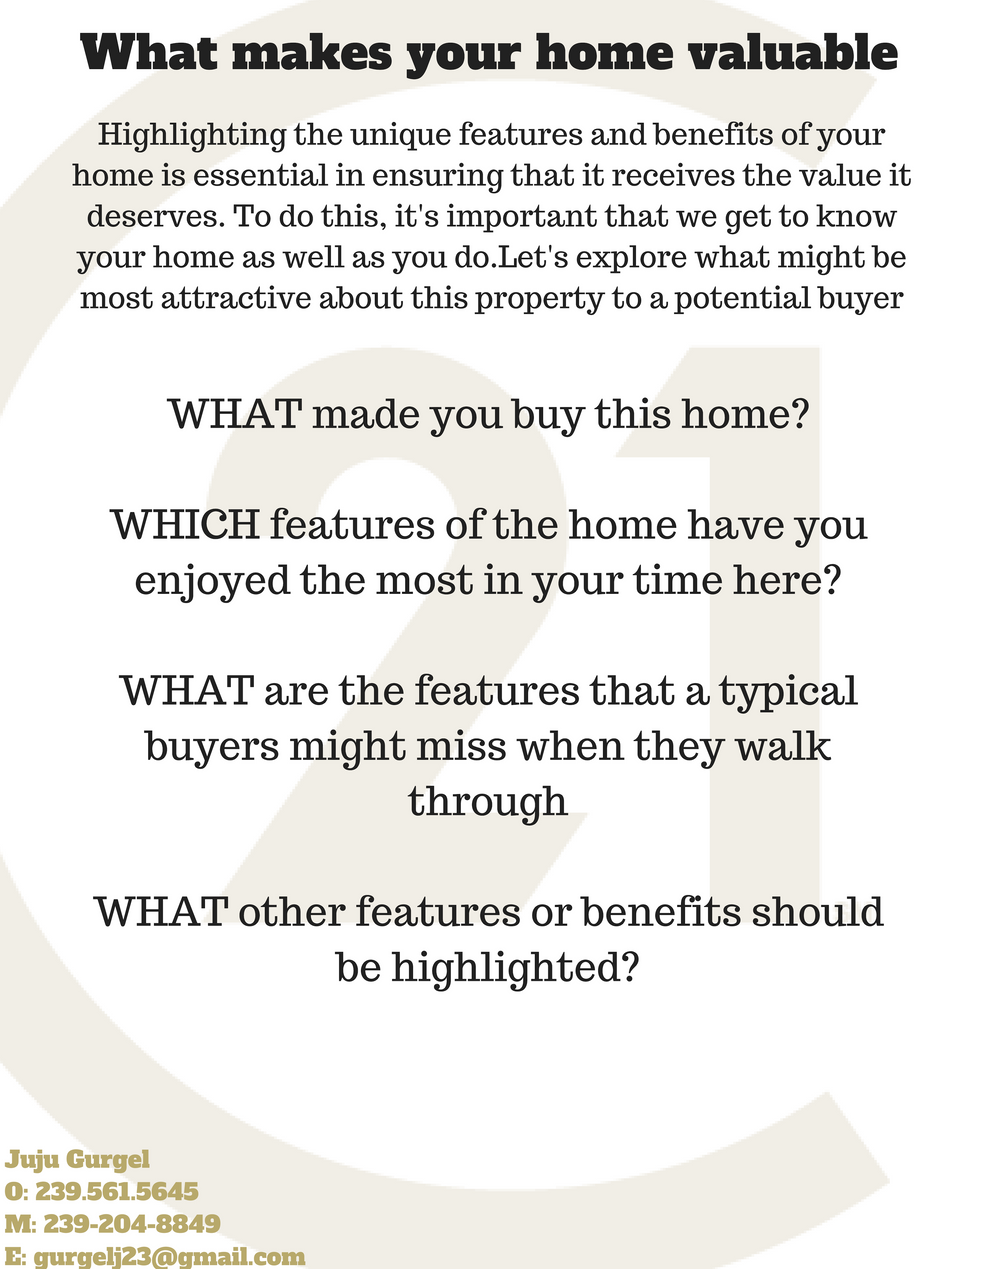 What makes your home valuable